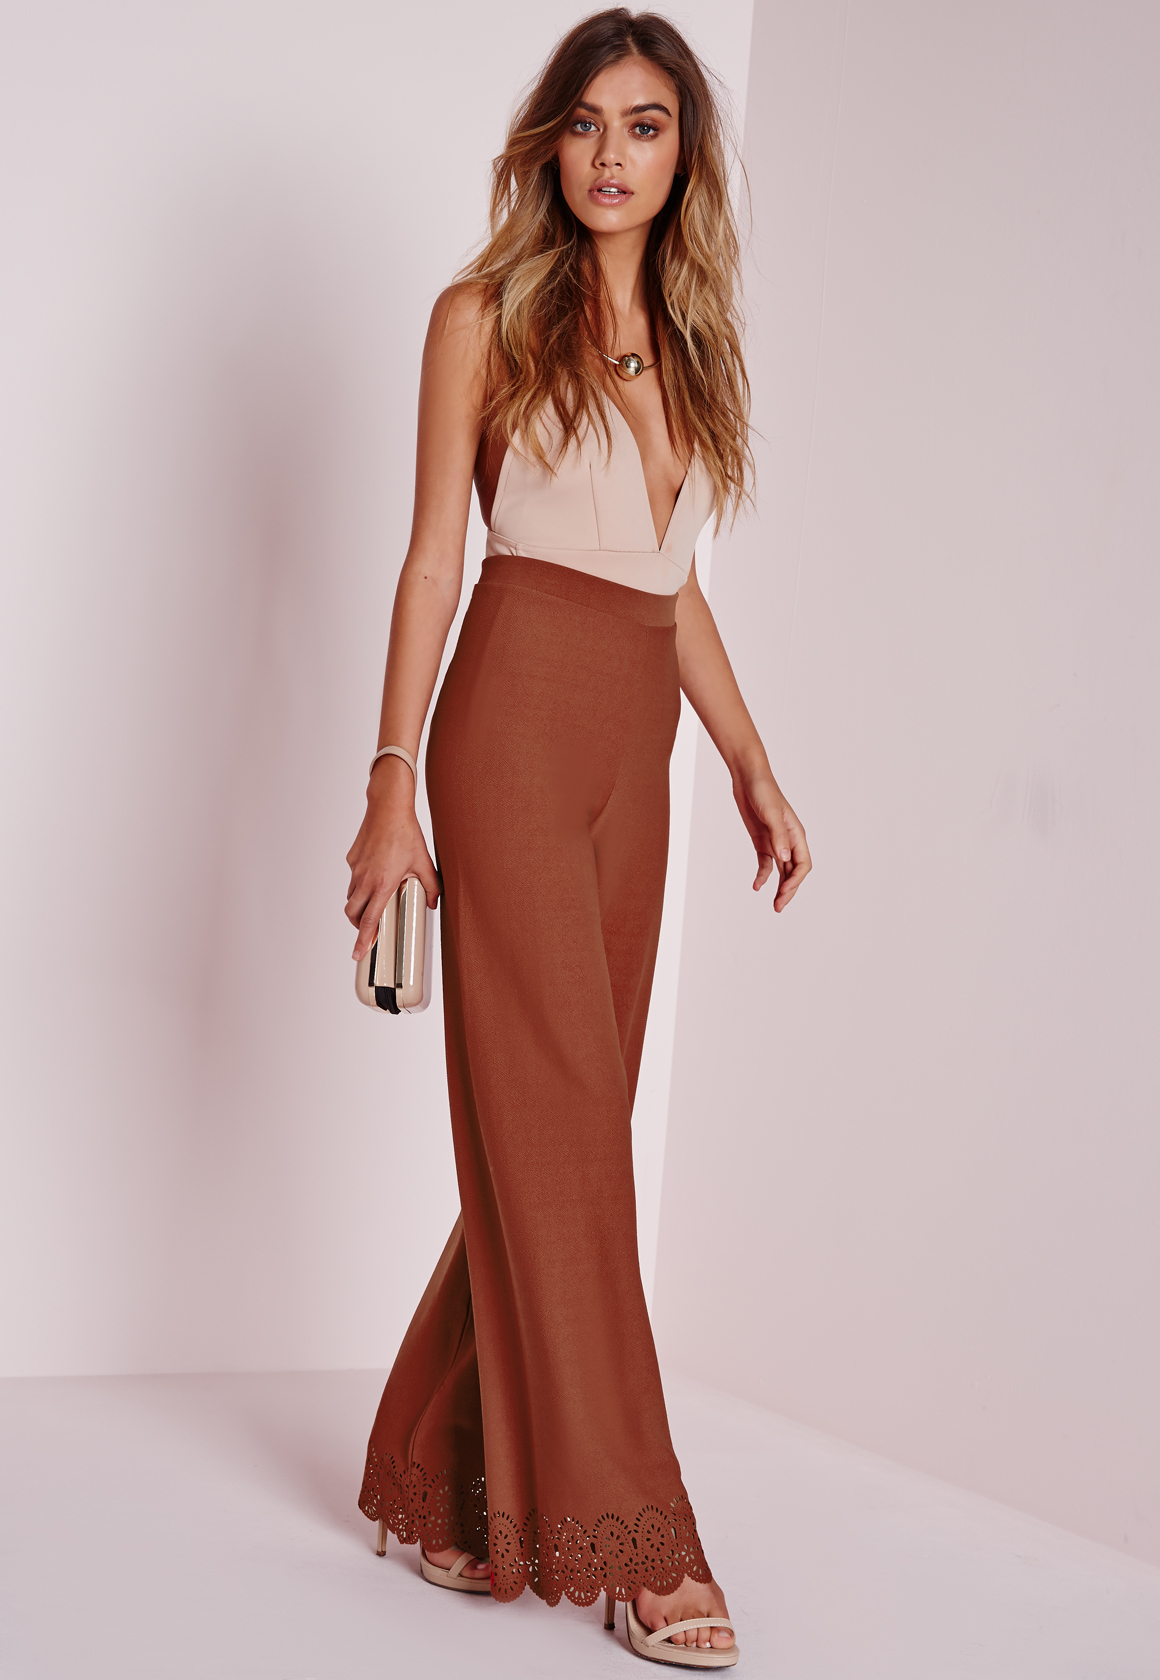 Lyst Missguided Laser Cut Wide Leg Pants Rust In Brown